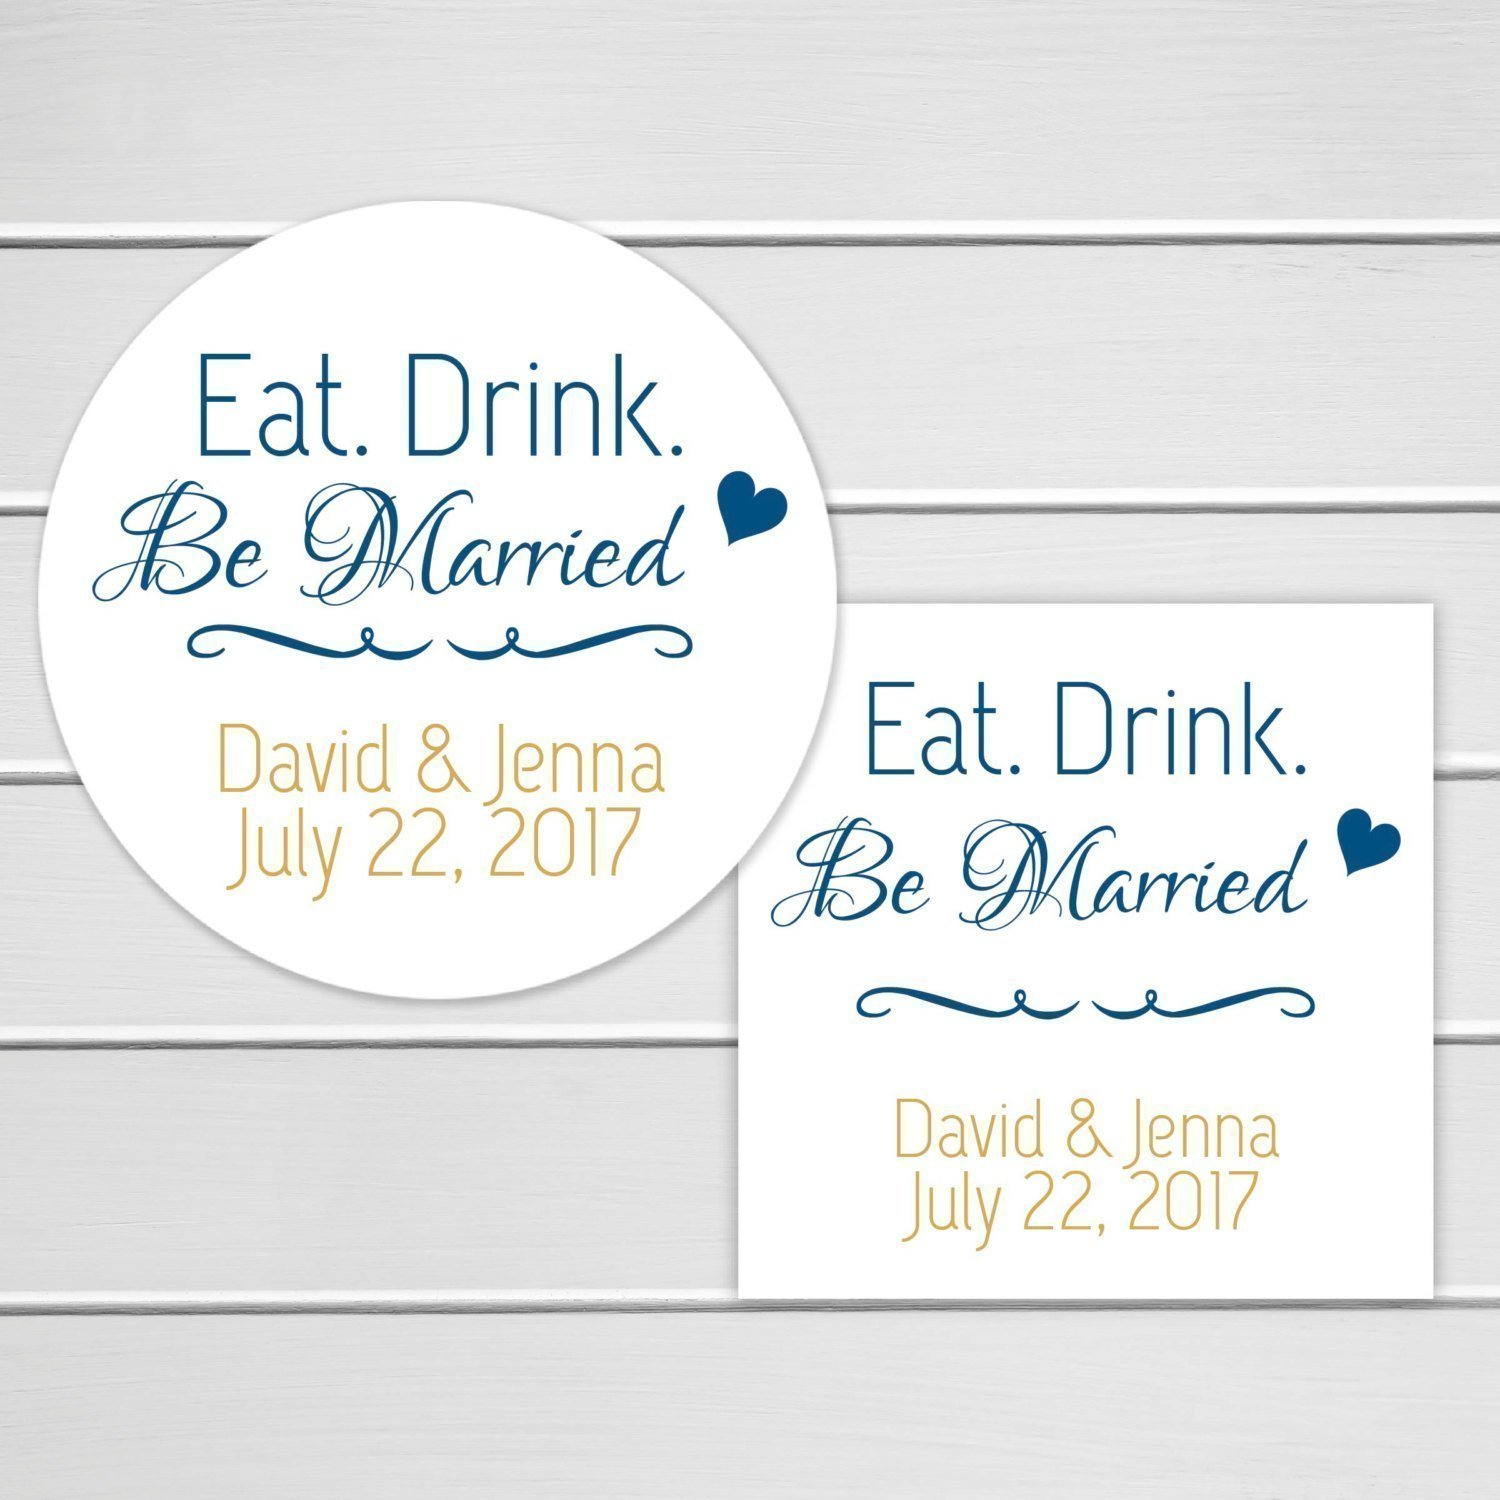 Amazon.com: Eat Drink Be Married Stickers, Wedding Favor Labels ...